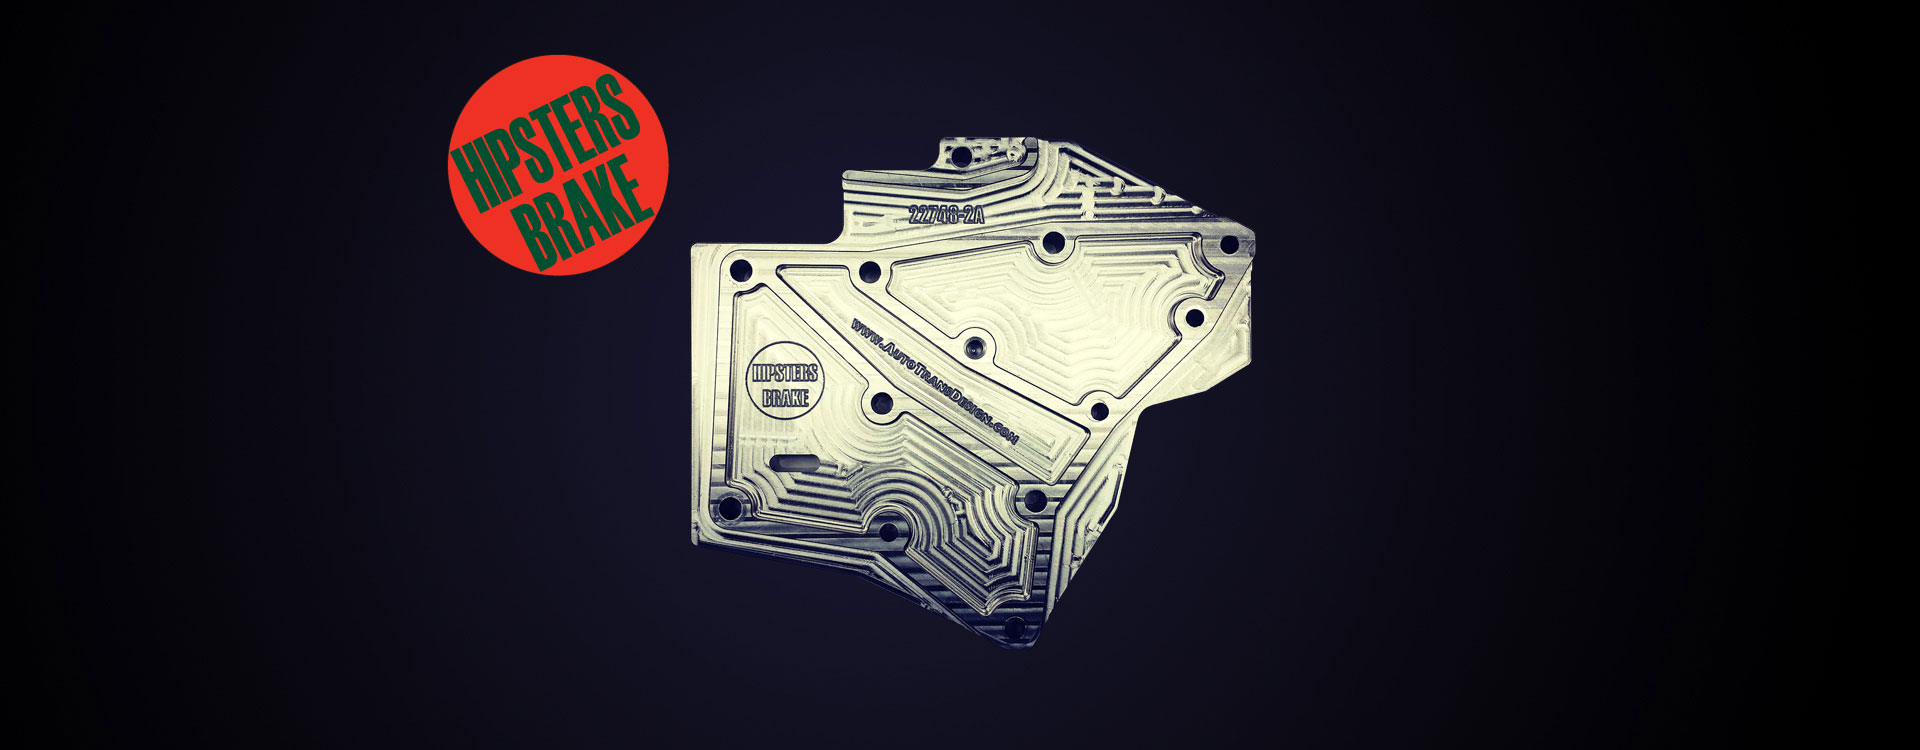 ATD Brand New Billet Aluminum Hipsters Transbrake Valvebodies for Turbo 400 banner image